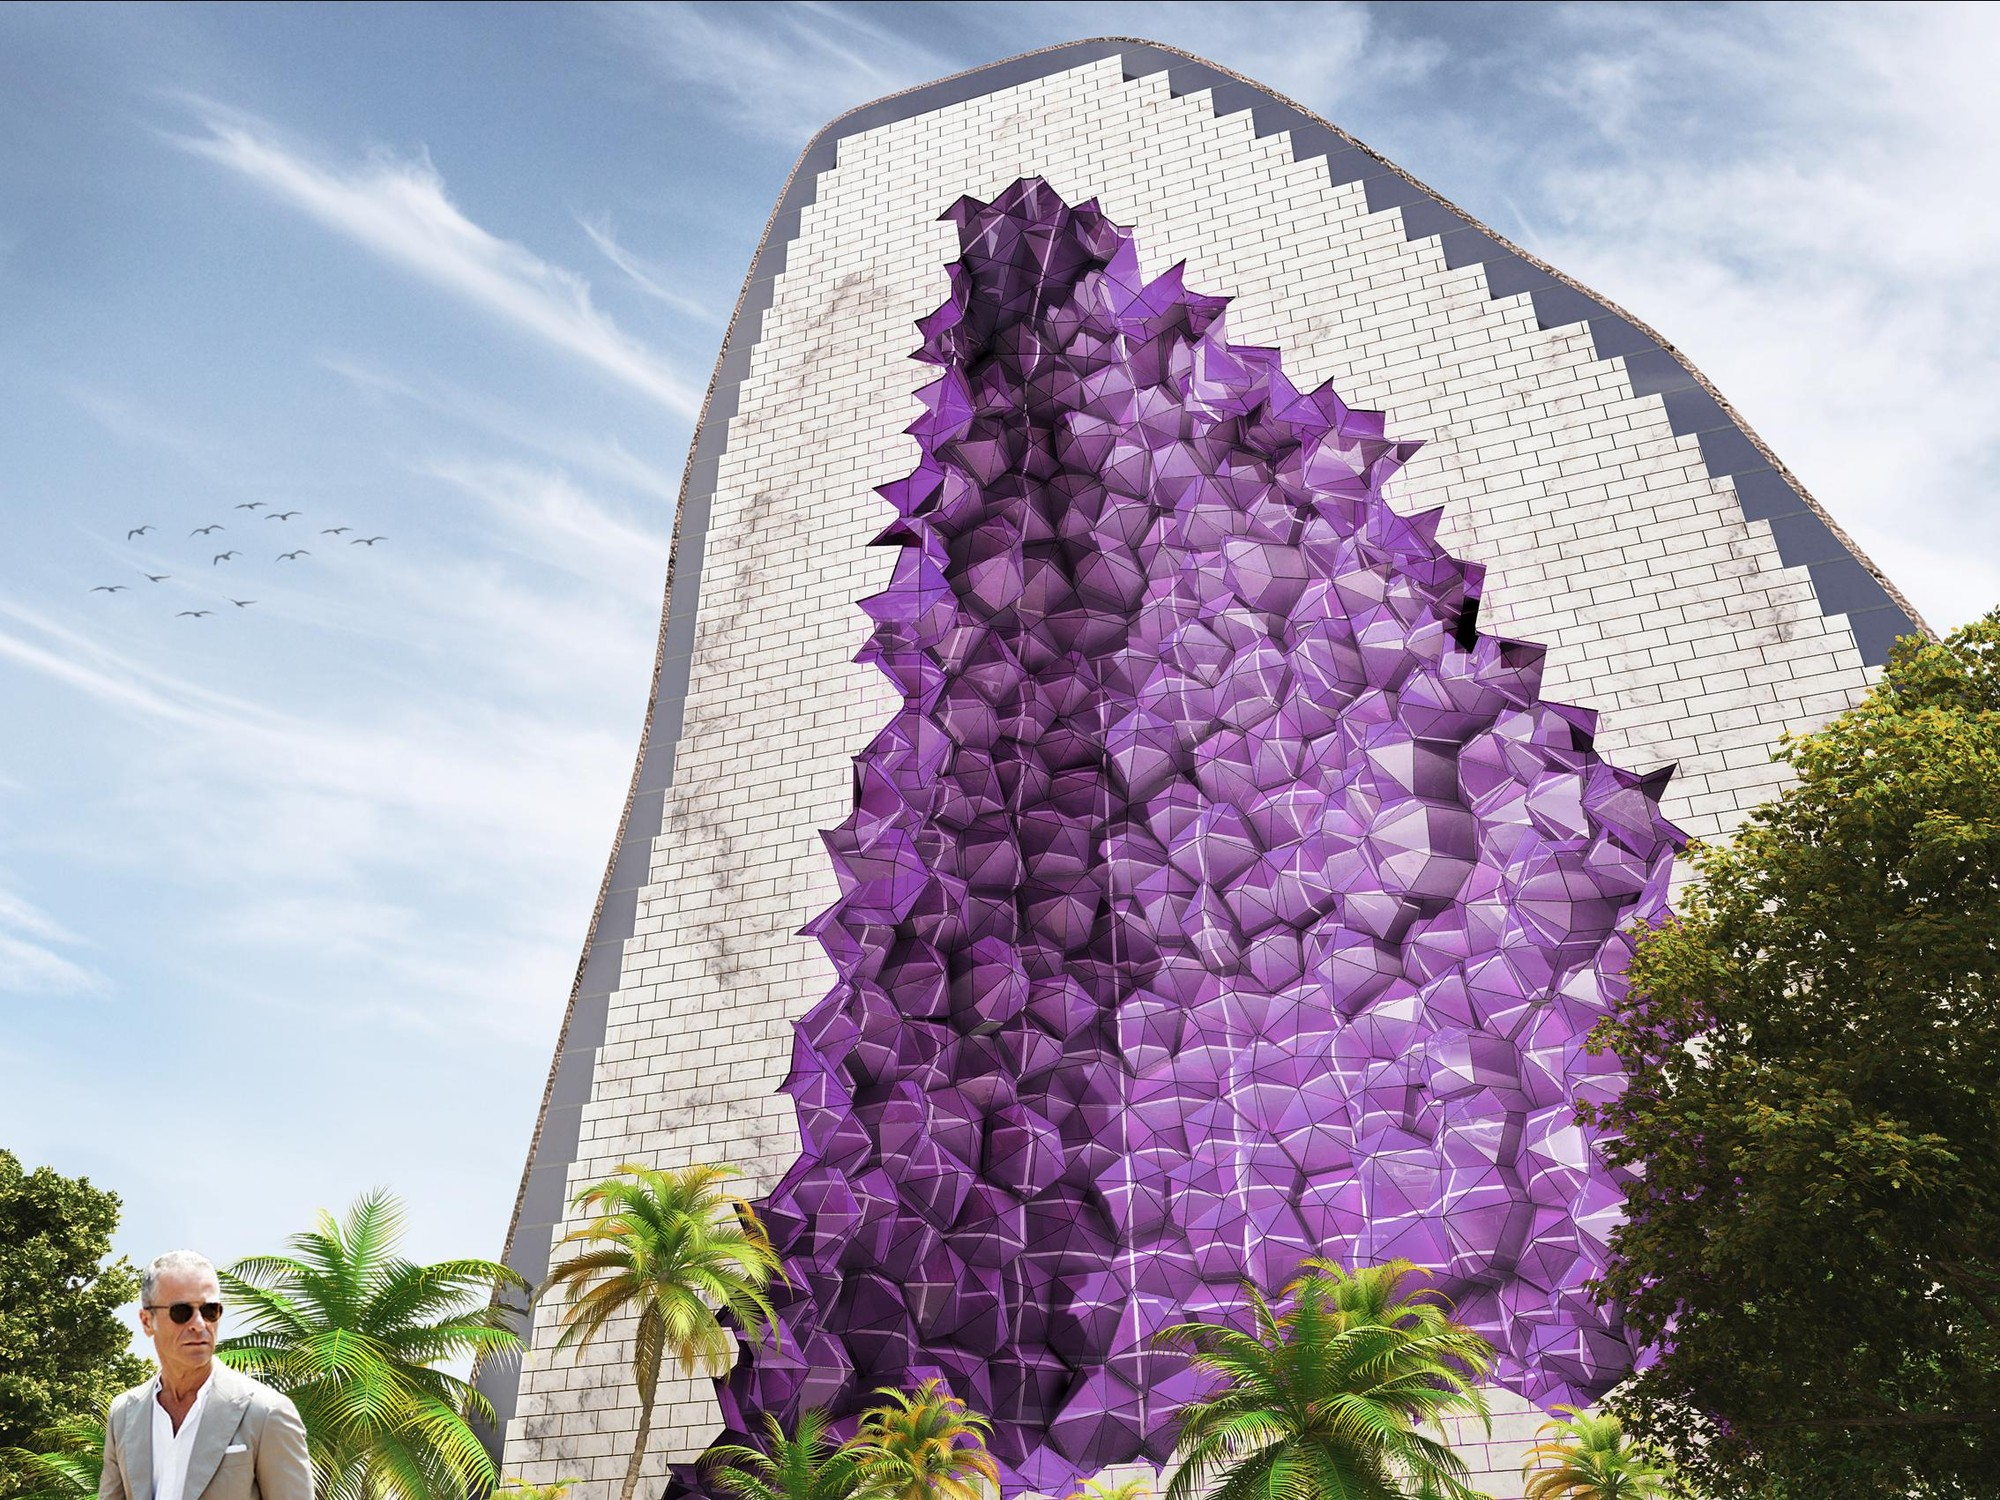 NL Architects Propose Striking Chain of Amethyst-Inspired Hotels, View from Base of Tower. Image Courtesy of NL Architects